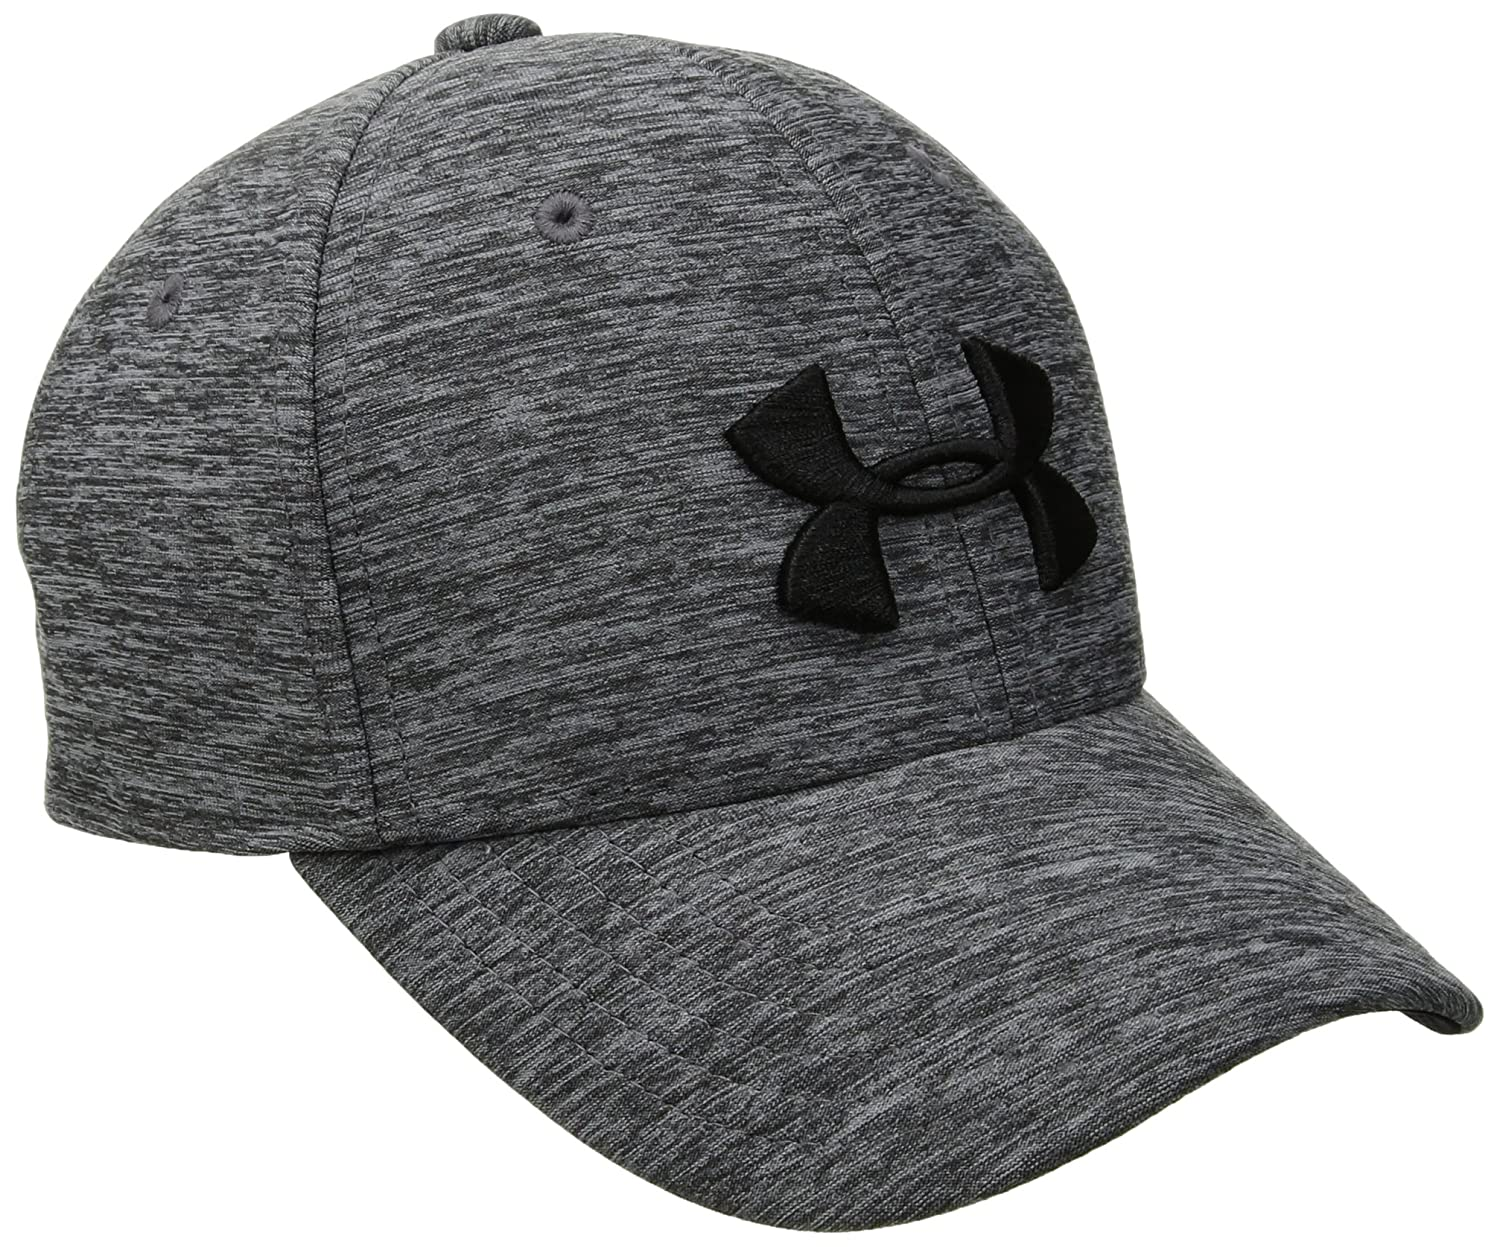 9c943247090 Amazon.com  Under Armour Boys  Twist Closer Cap  Sports   Outdoors